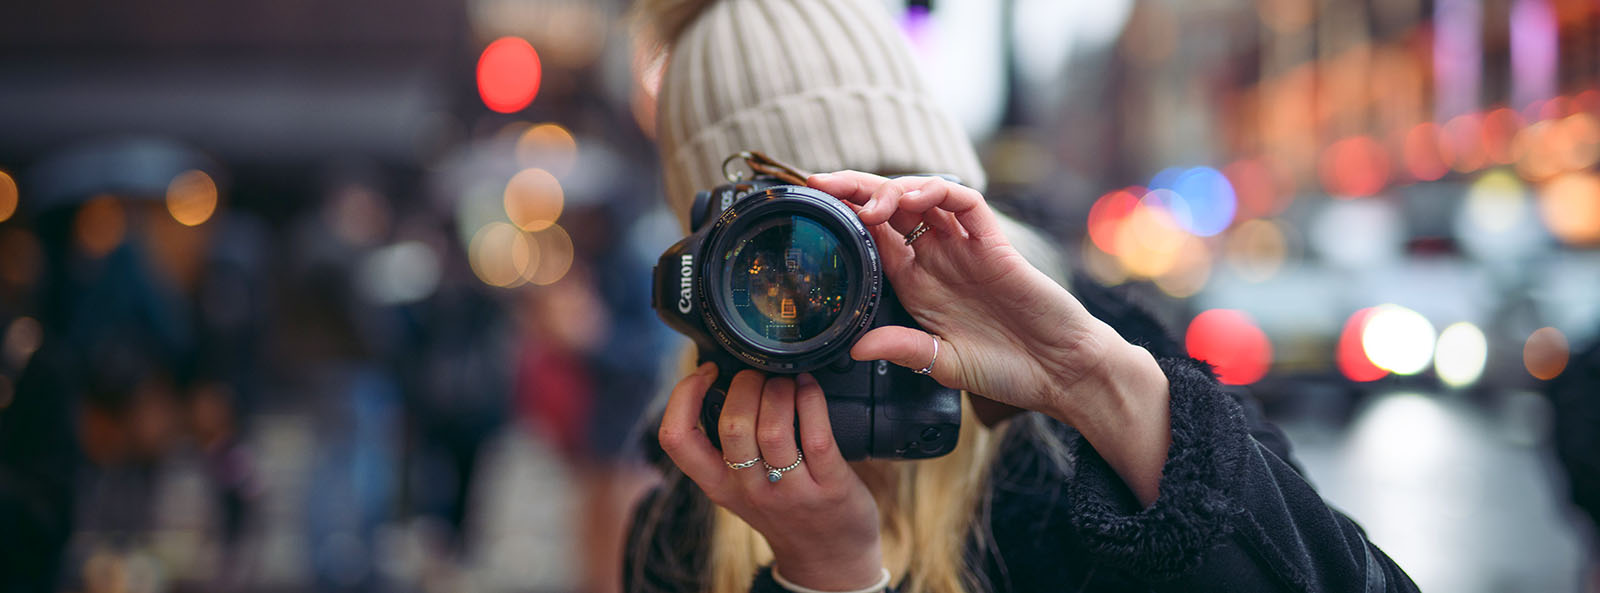 What It's Like Being a Woman Photographer in 2020 | Grid50